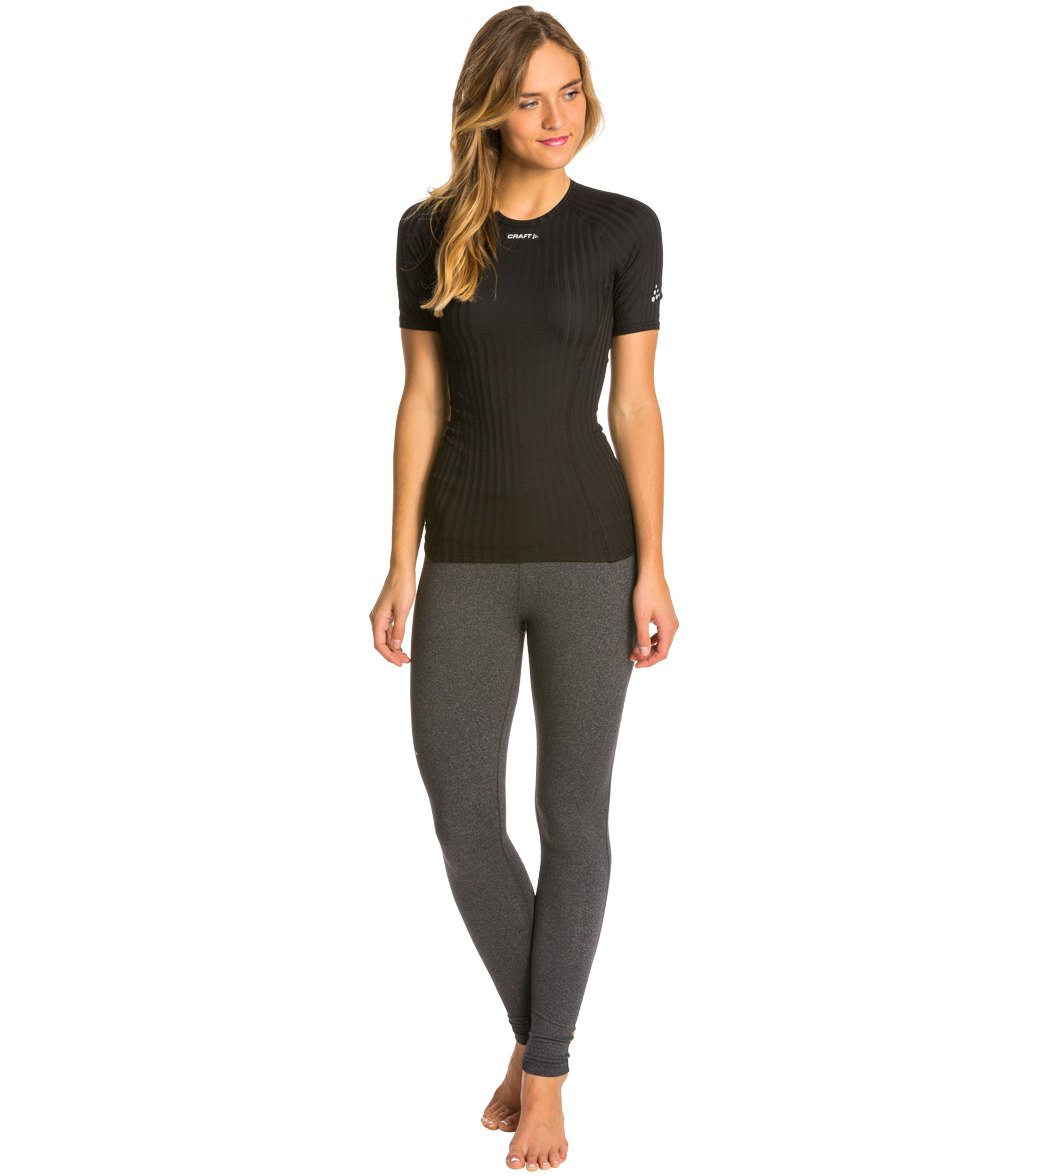 f9fc42d48b1ba Craft Women s Active Extreme CN Short Sleeve Baselayer at SwimOutlet ...